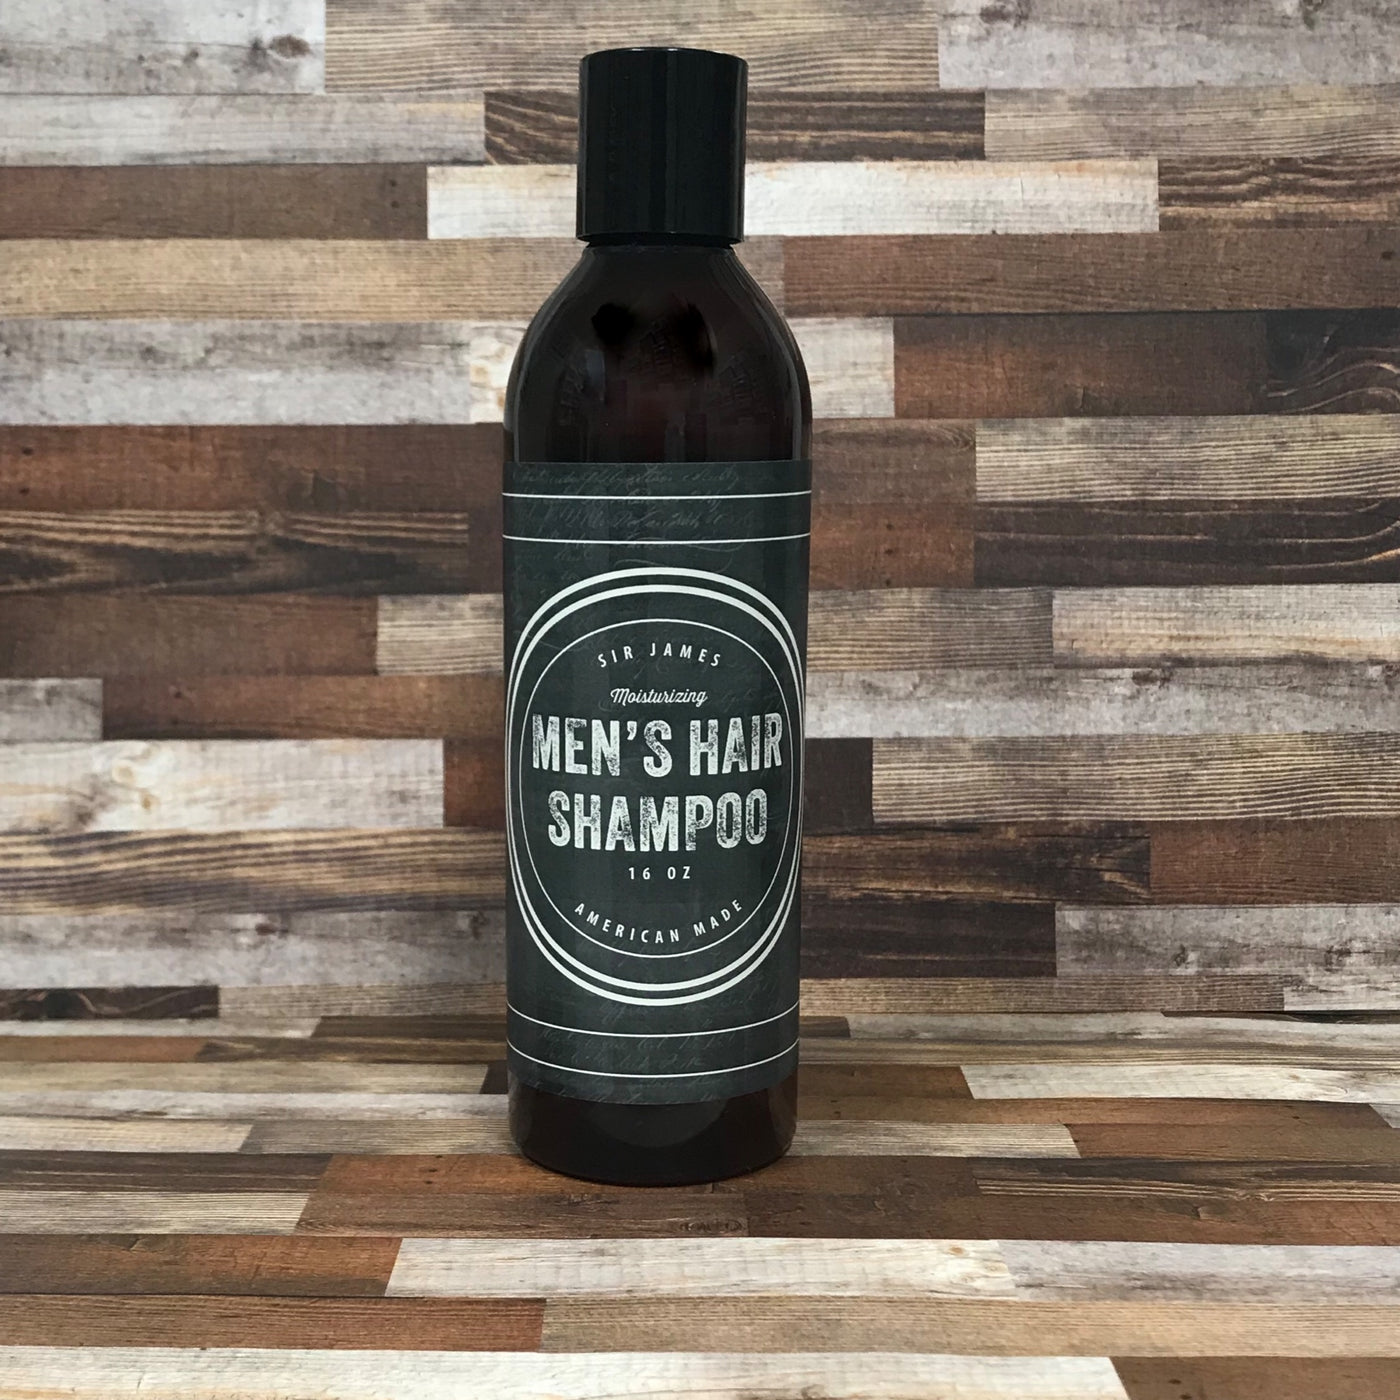 Sir James Mens Hair Shampoo